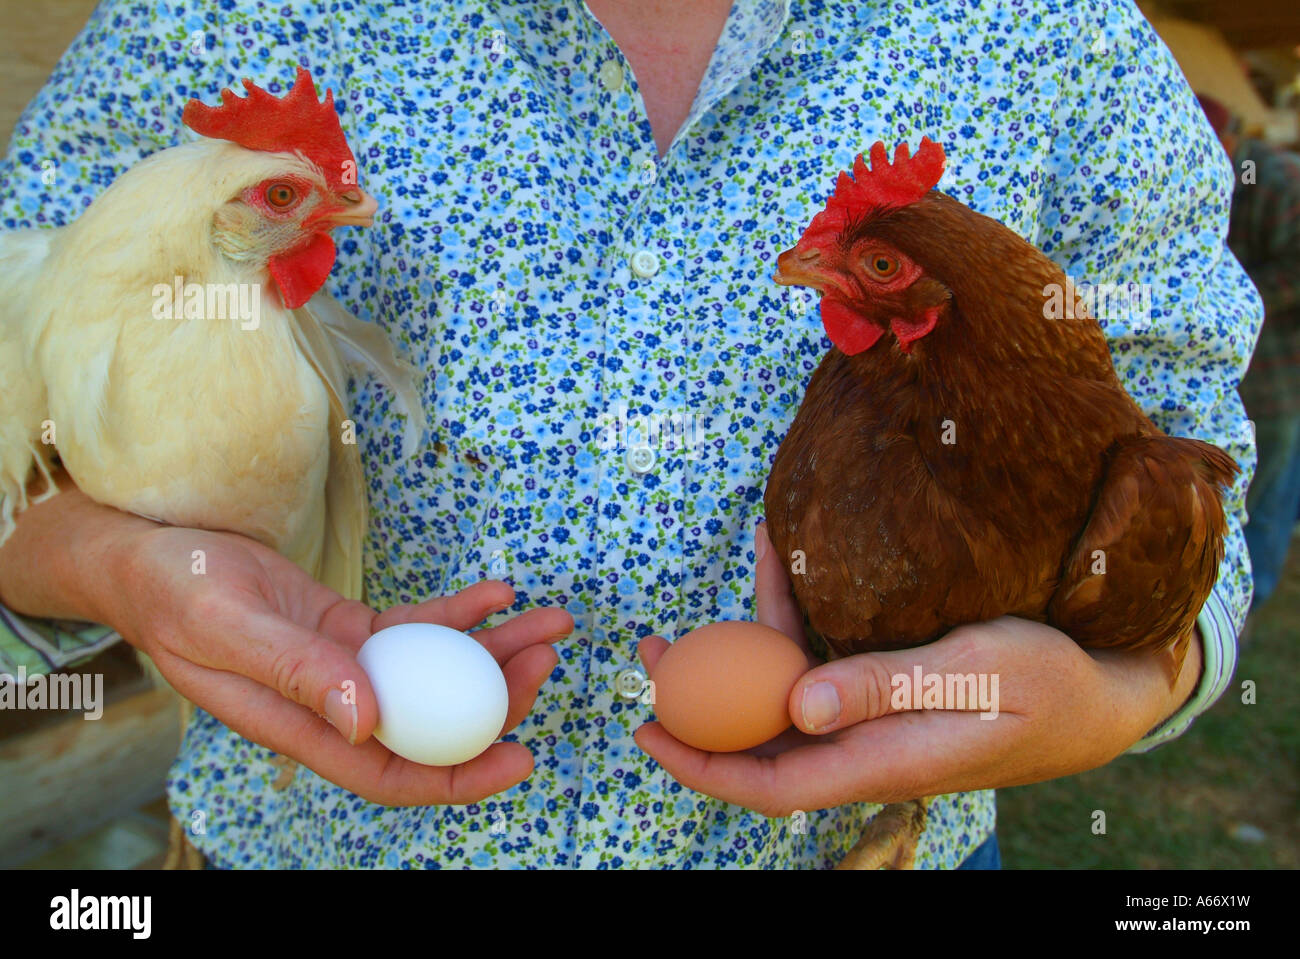 genetics-a-woman-holds-a-brown-chicken-and-a-white-chicken-with-their-A66X1W.jpg